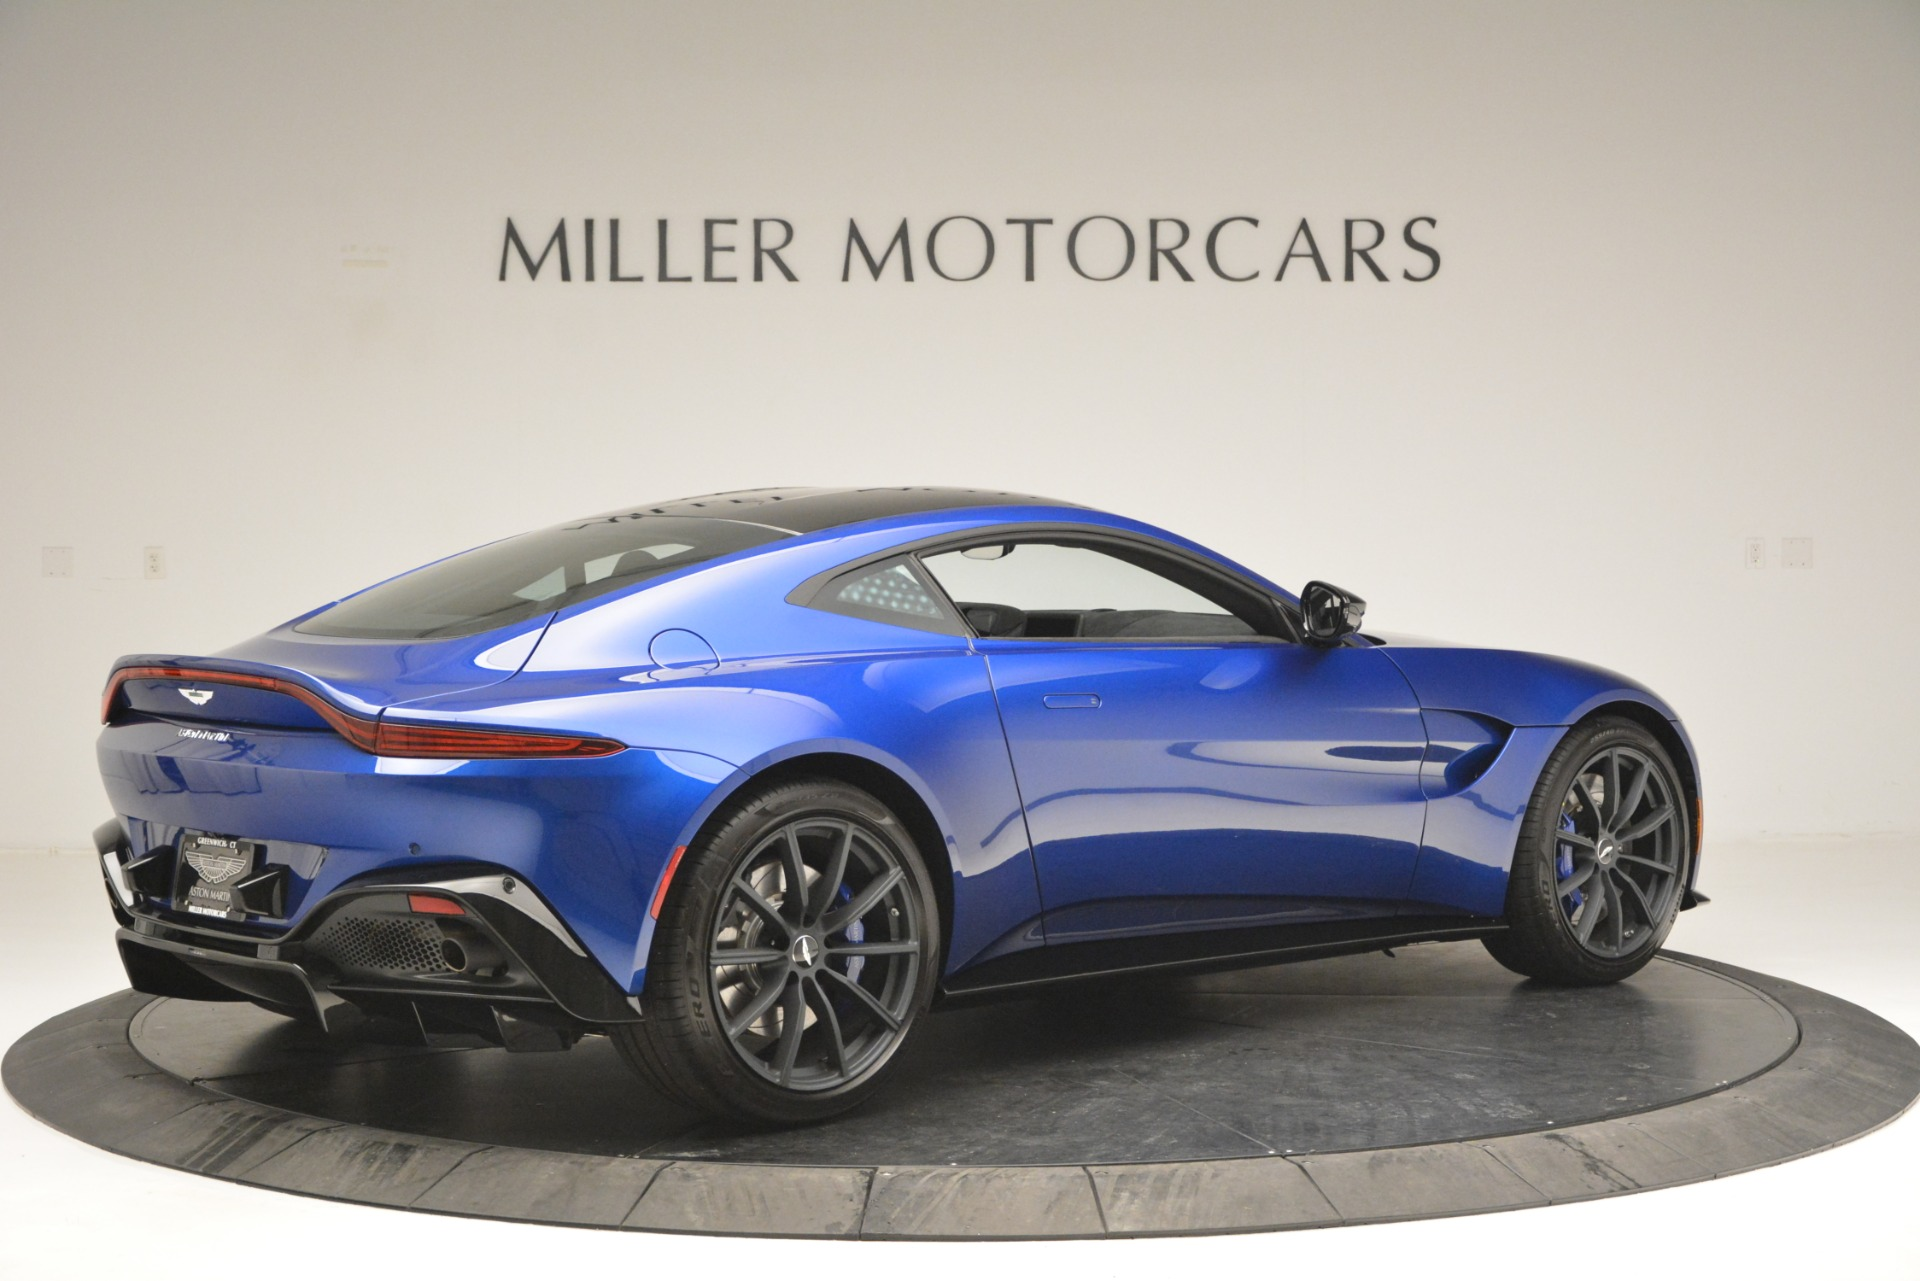 Pre Owned 2019 Aston Martin Vantage Coupe For Sale 186 021 Miller Motorcars Stock A1353b